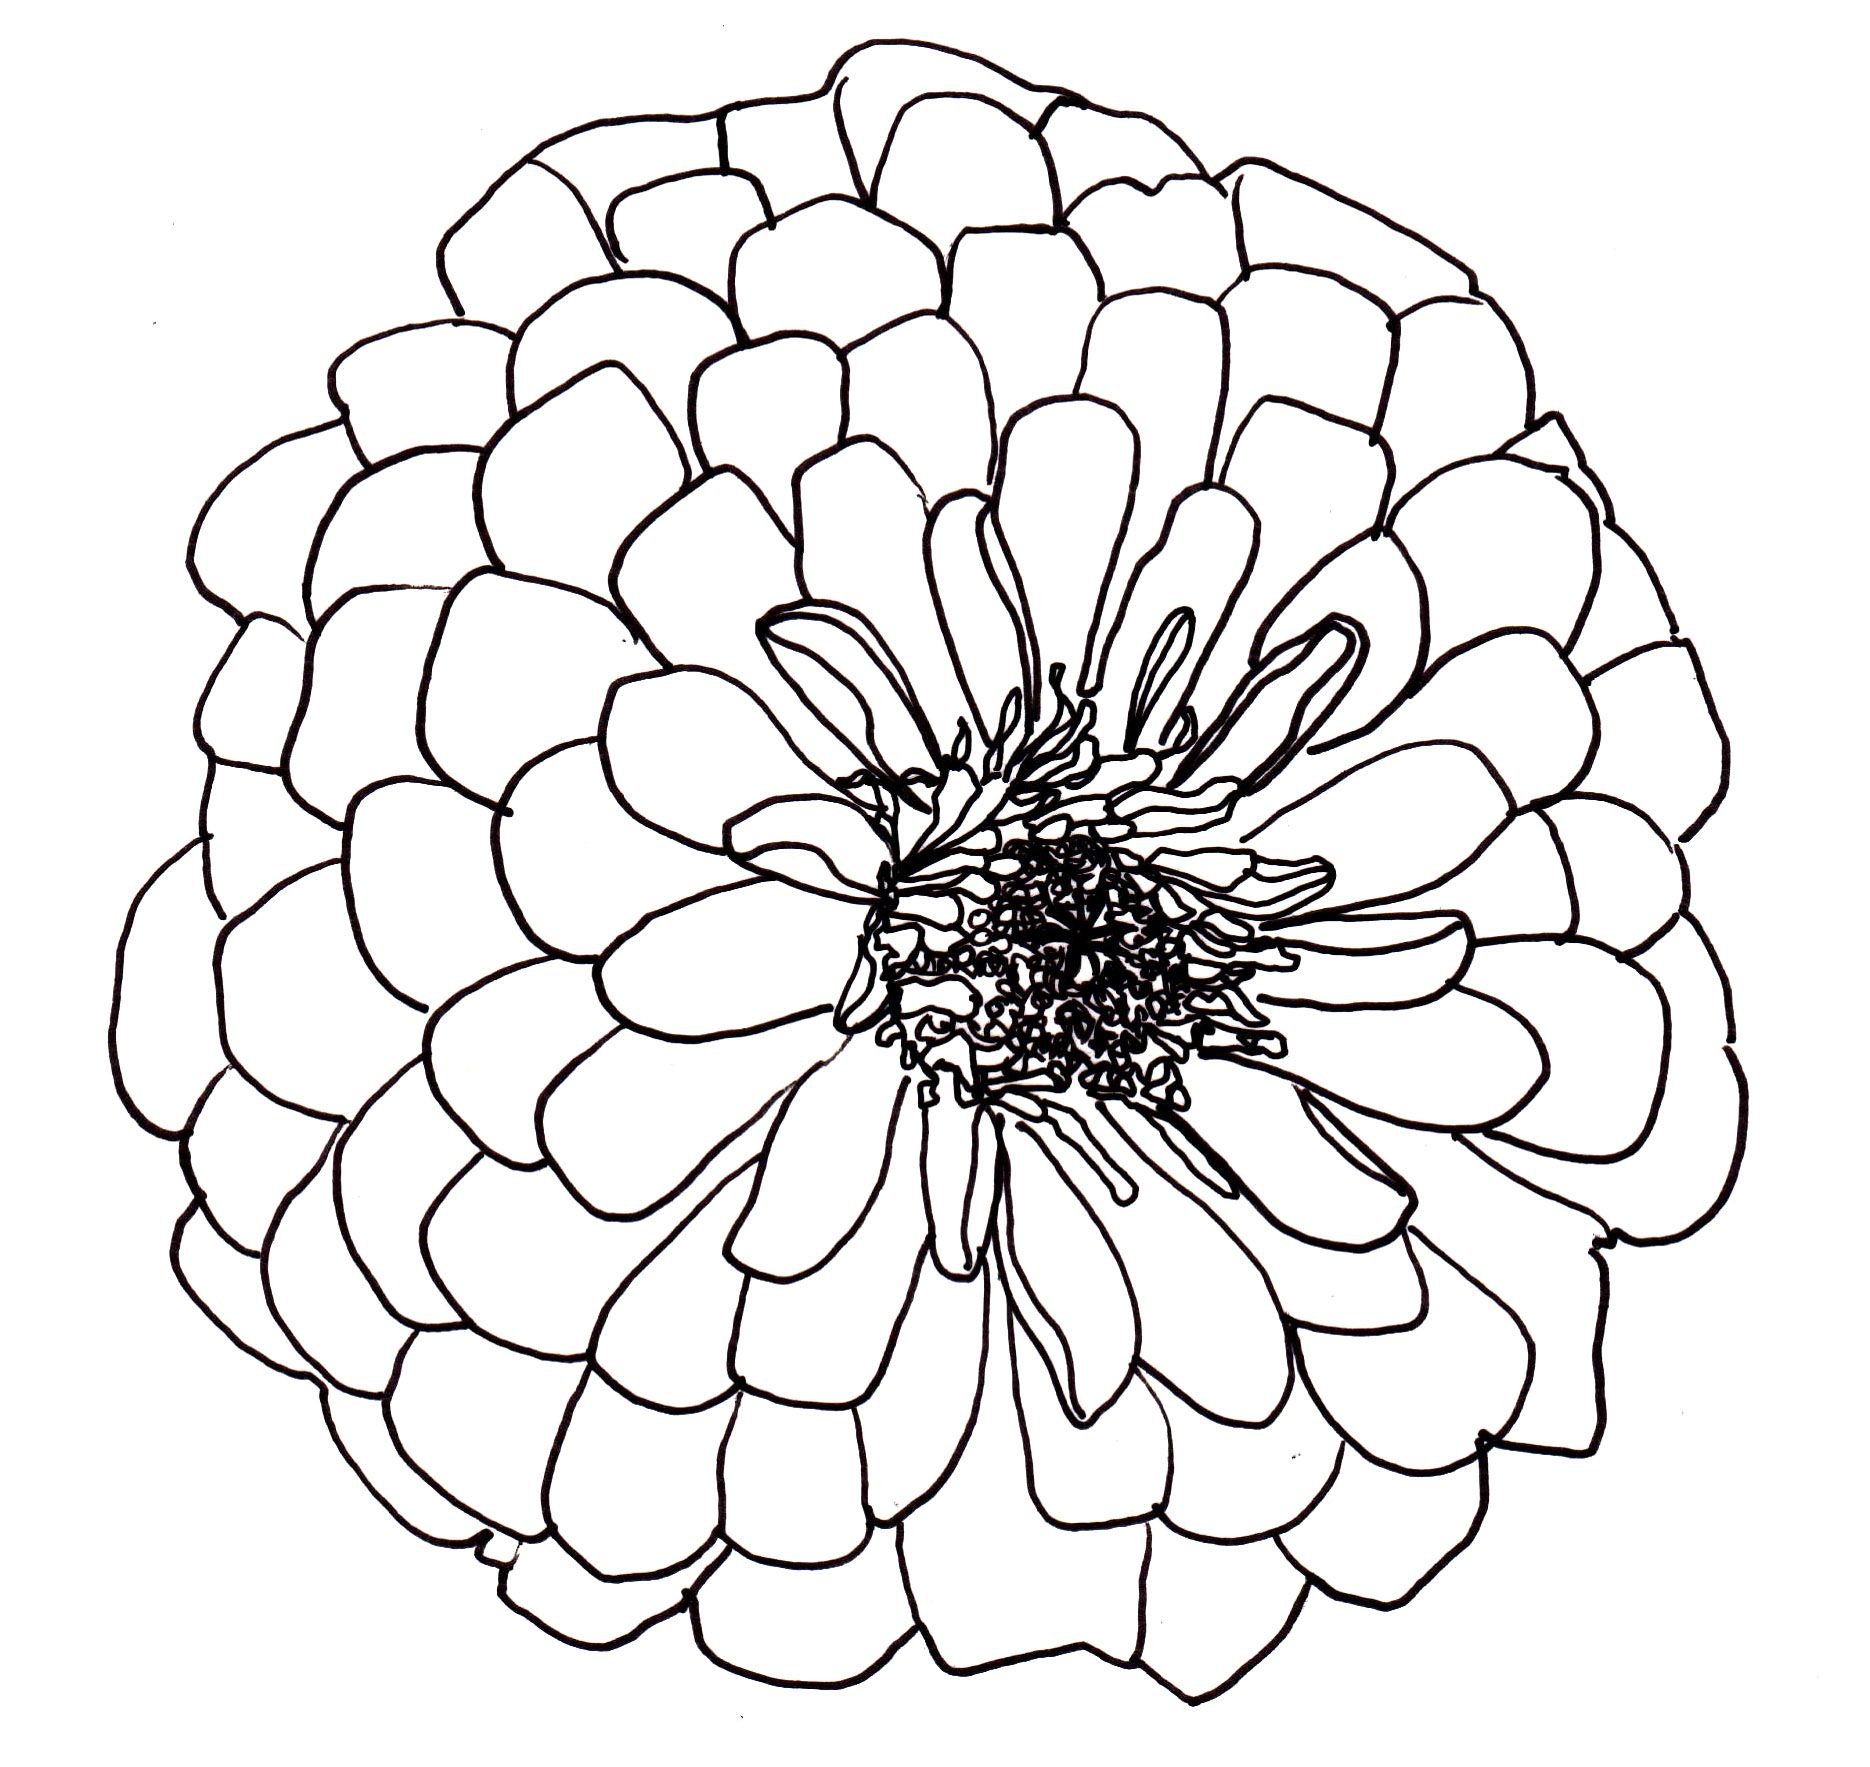 Line Art Flower Drawing : Line drawing flowers dahlia drawings pinterest